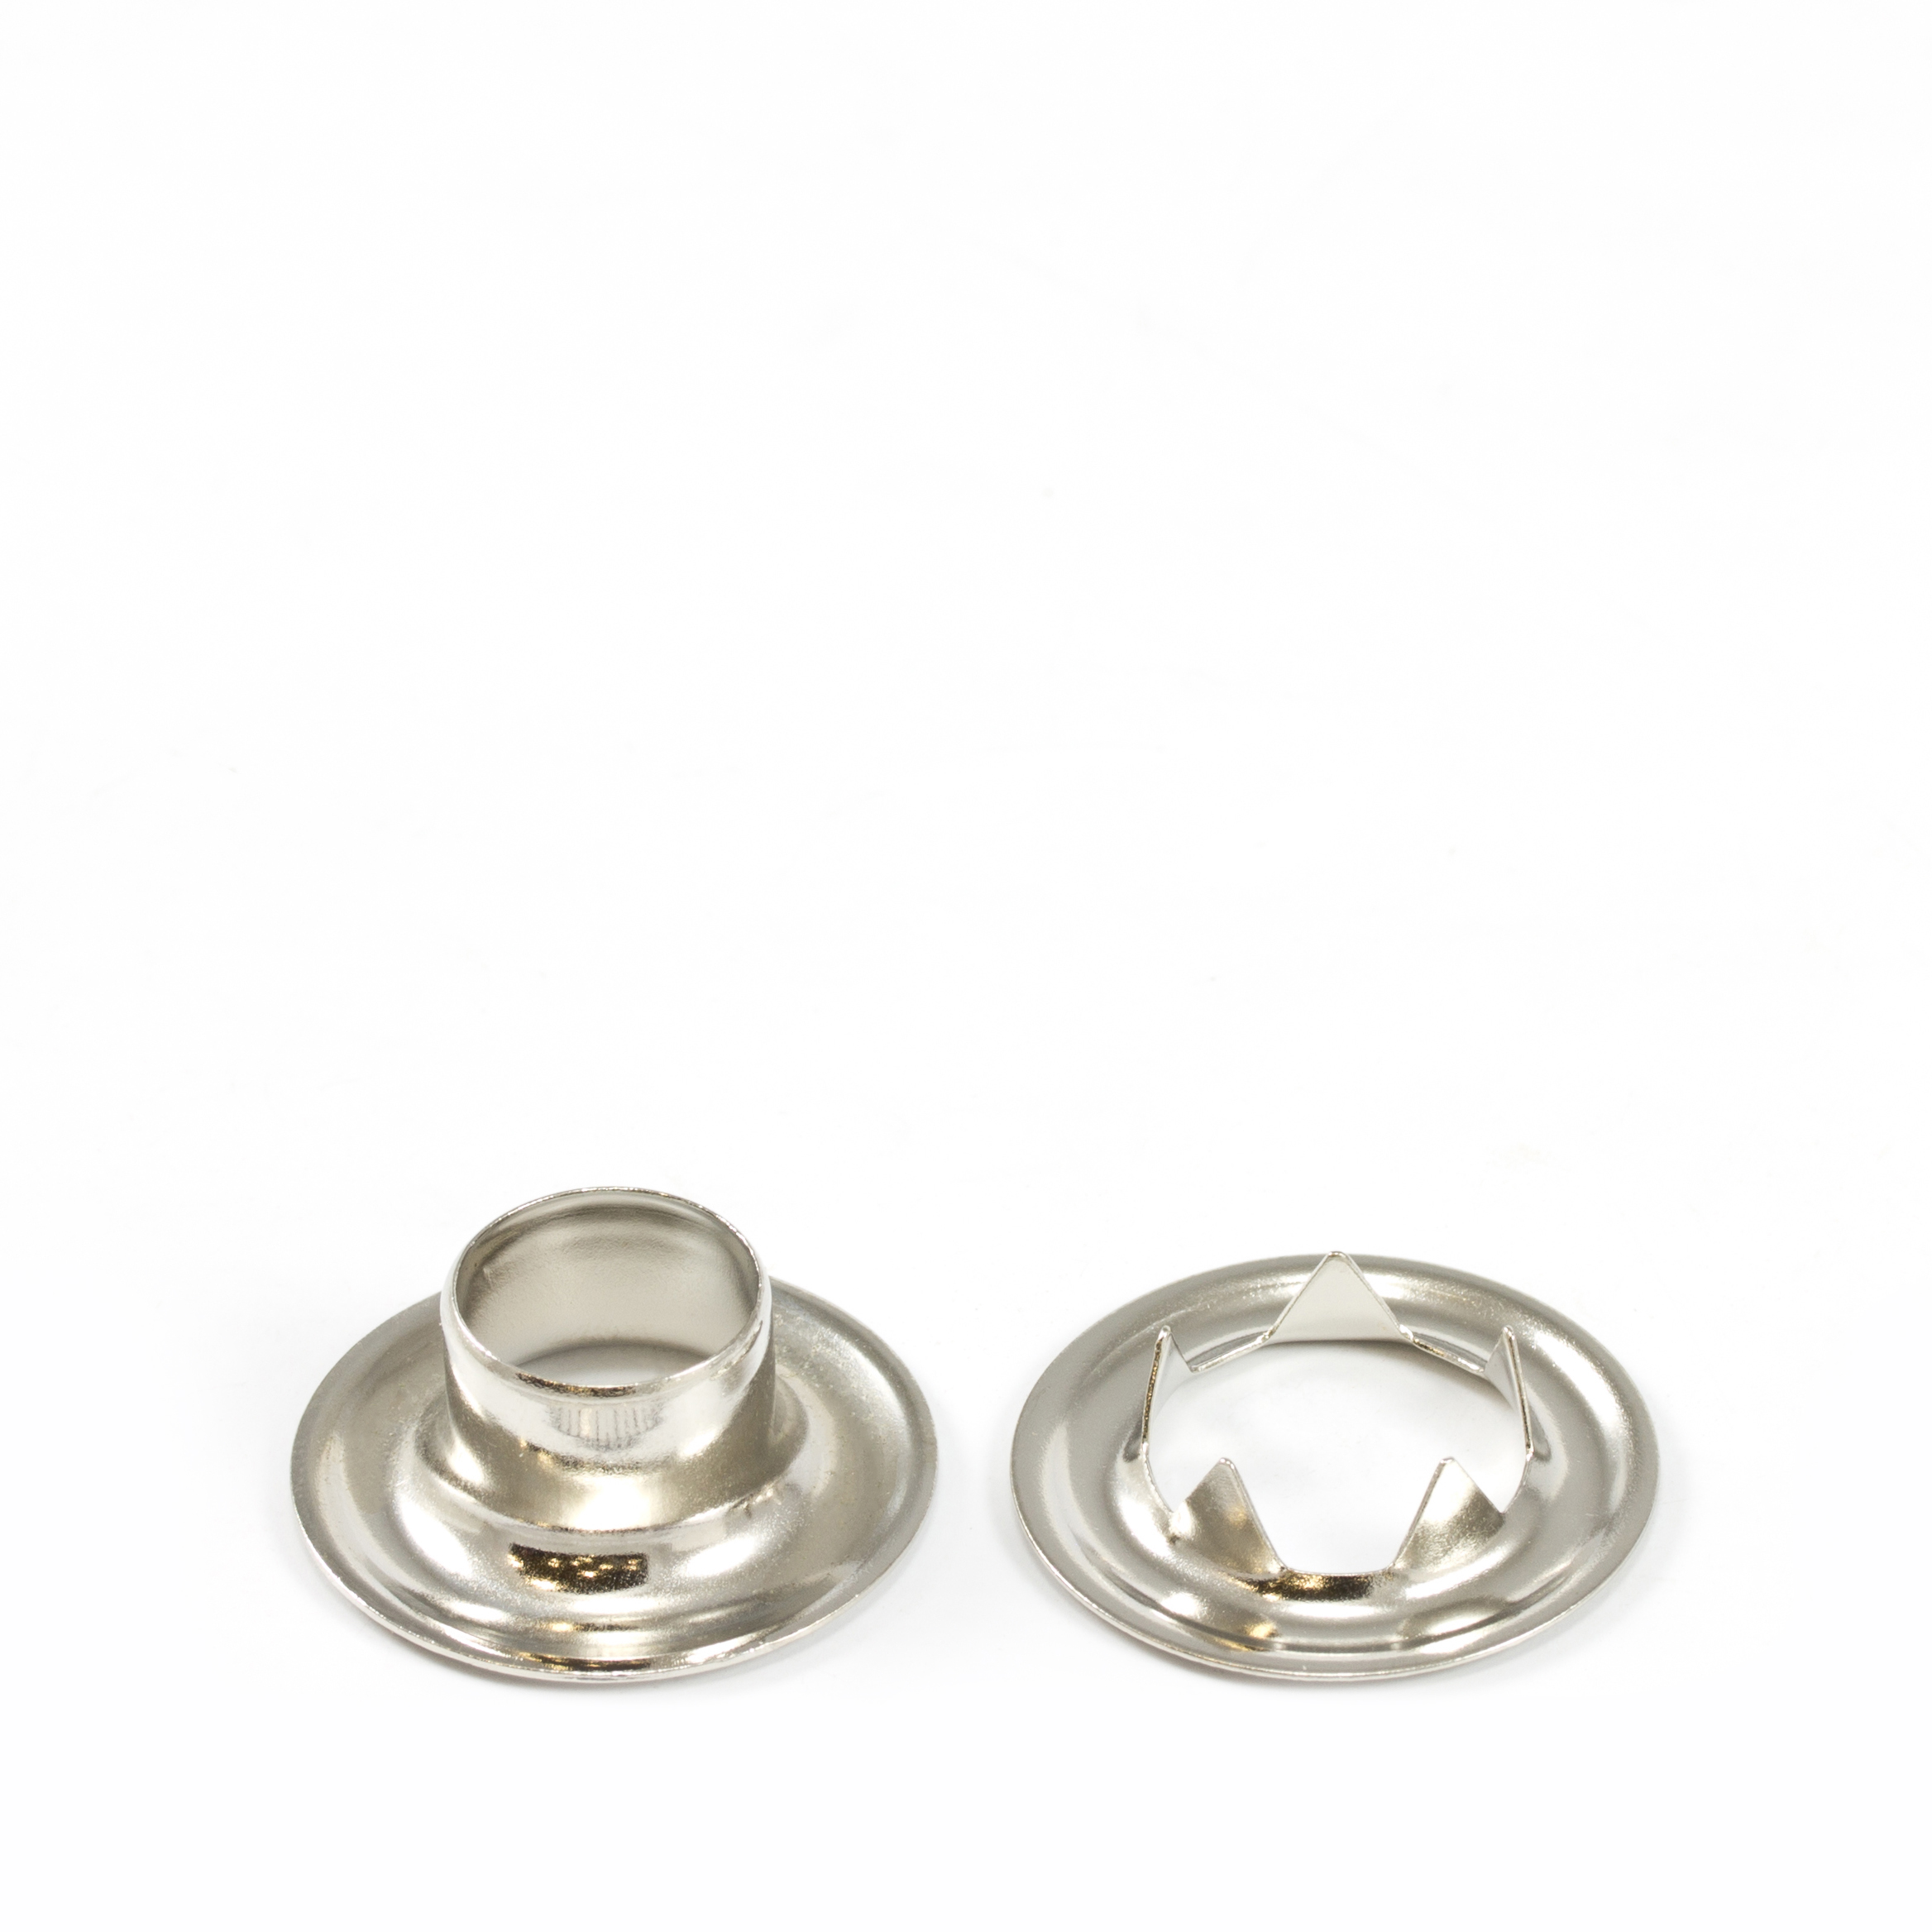 Grommet with Tooth Washer #4 Brass Nickel Plated 1/2